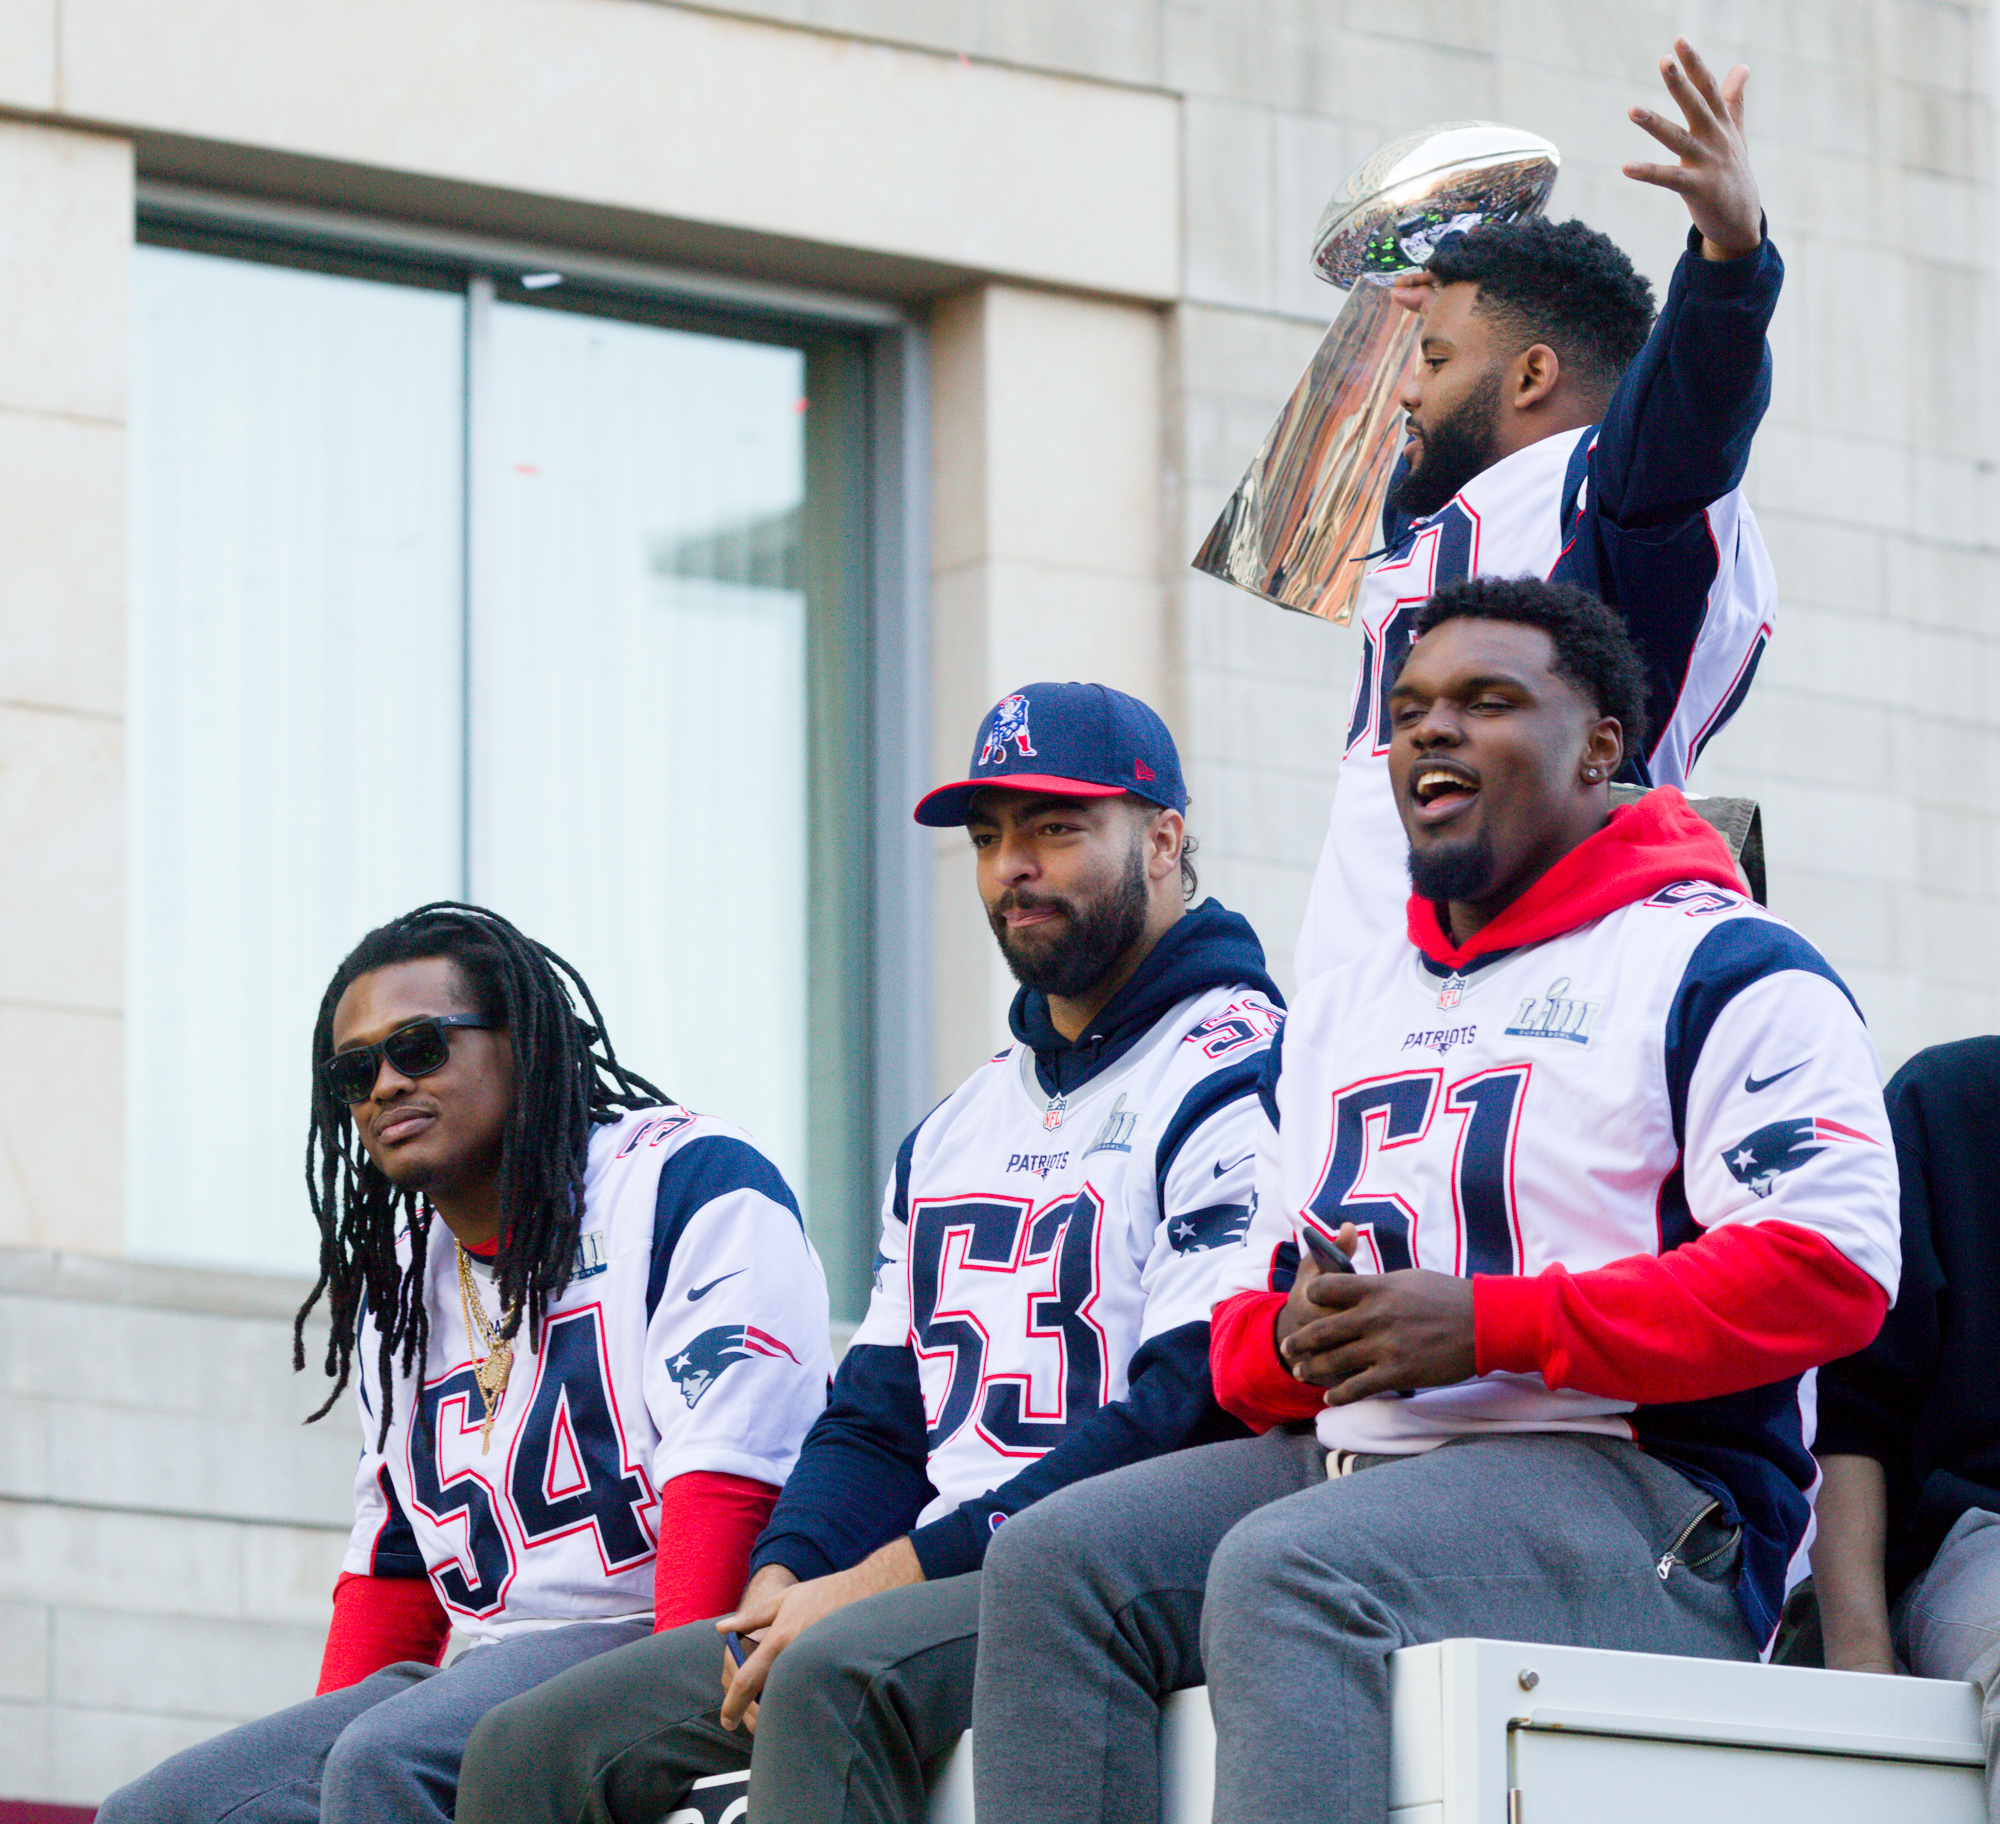 The linebackers - Dont'a Hightower, Kyle Van Noy, Elandon Roberts (with trophy) and rookie Ja'Whaun Bentley. Bentley, a promising young player, got hurt at the start of the season and spent the rest of the year on Injured Reserve.